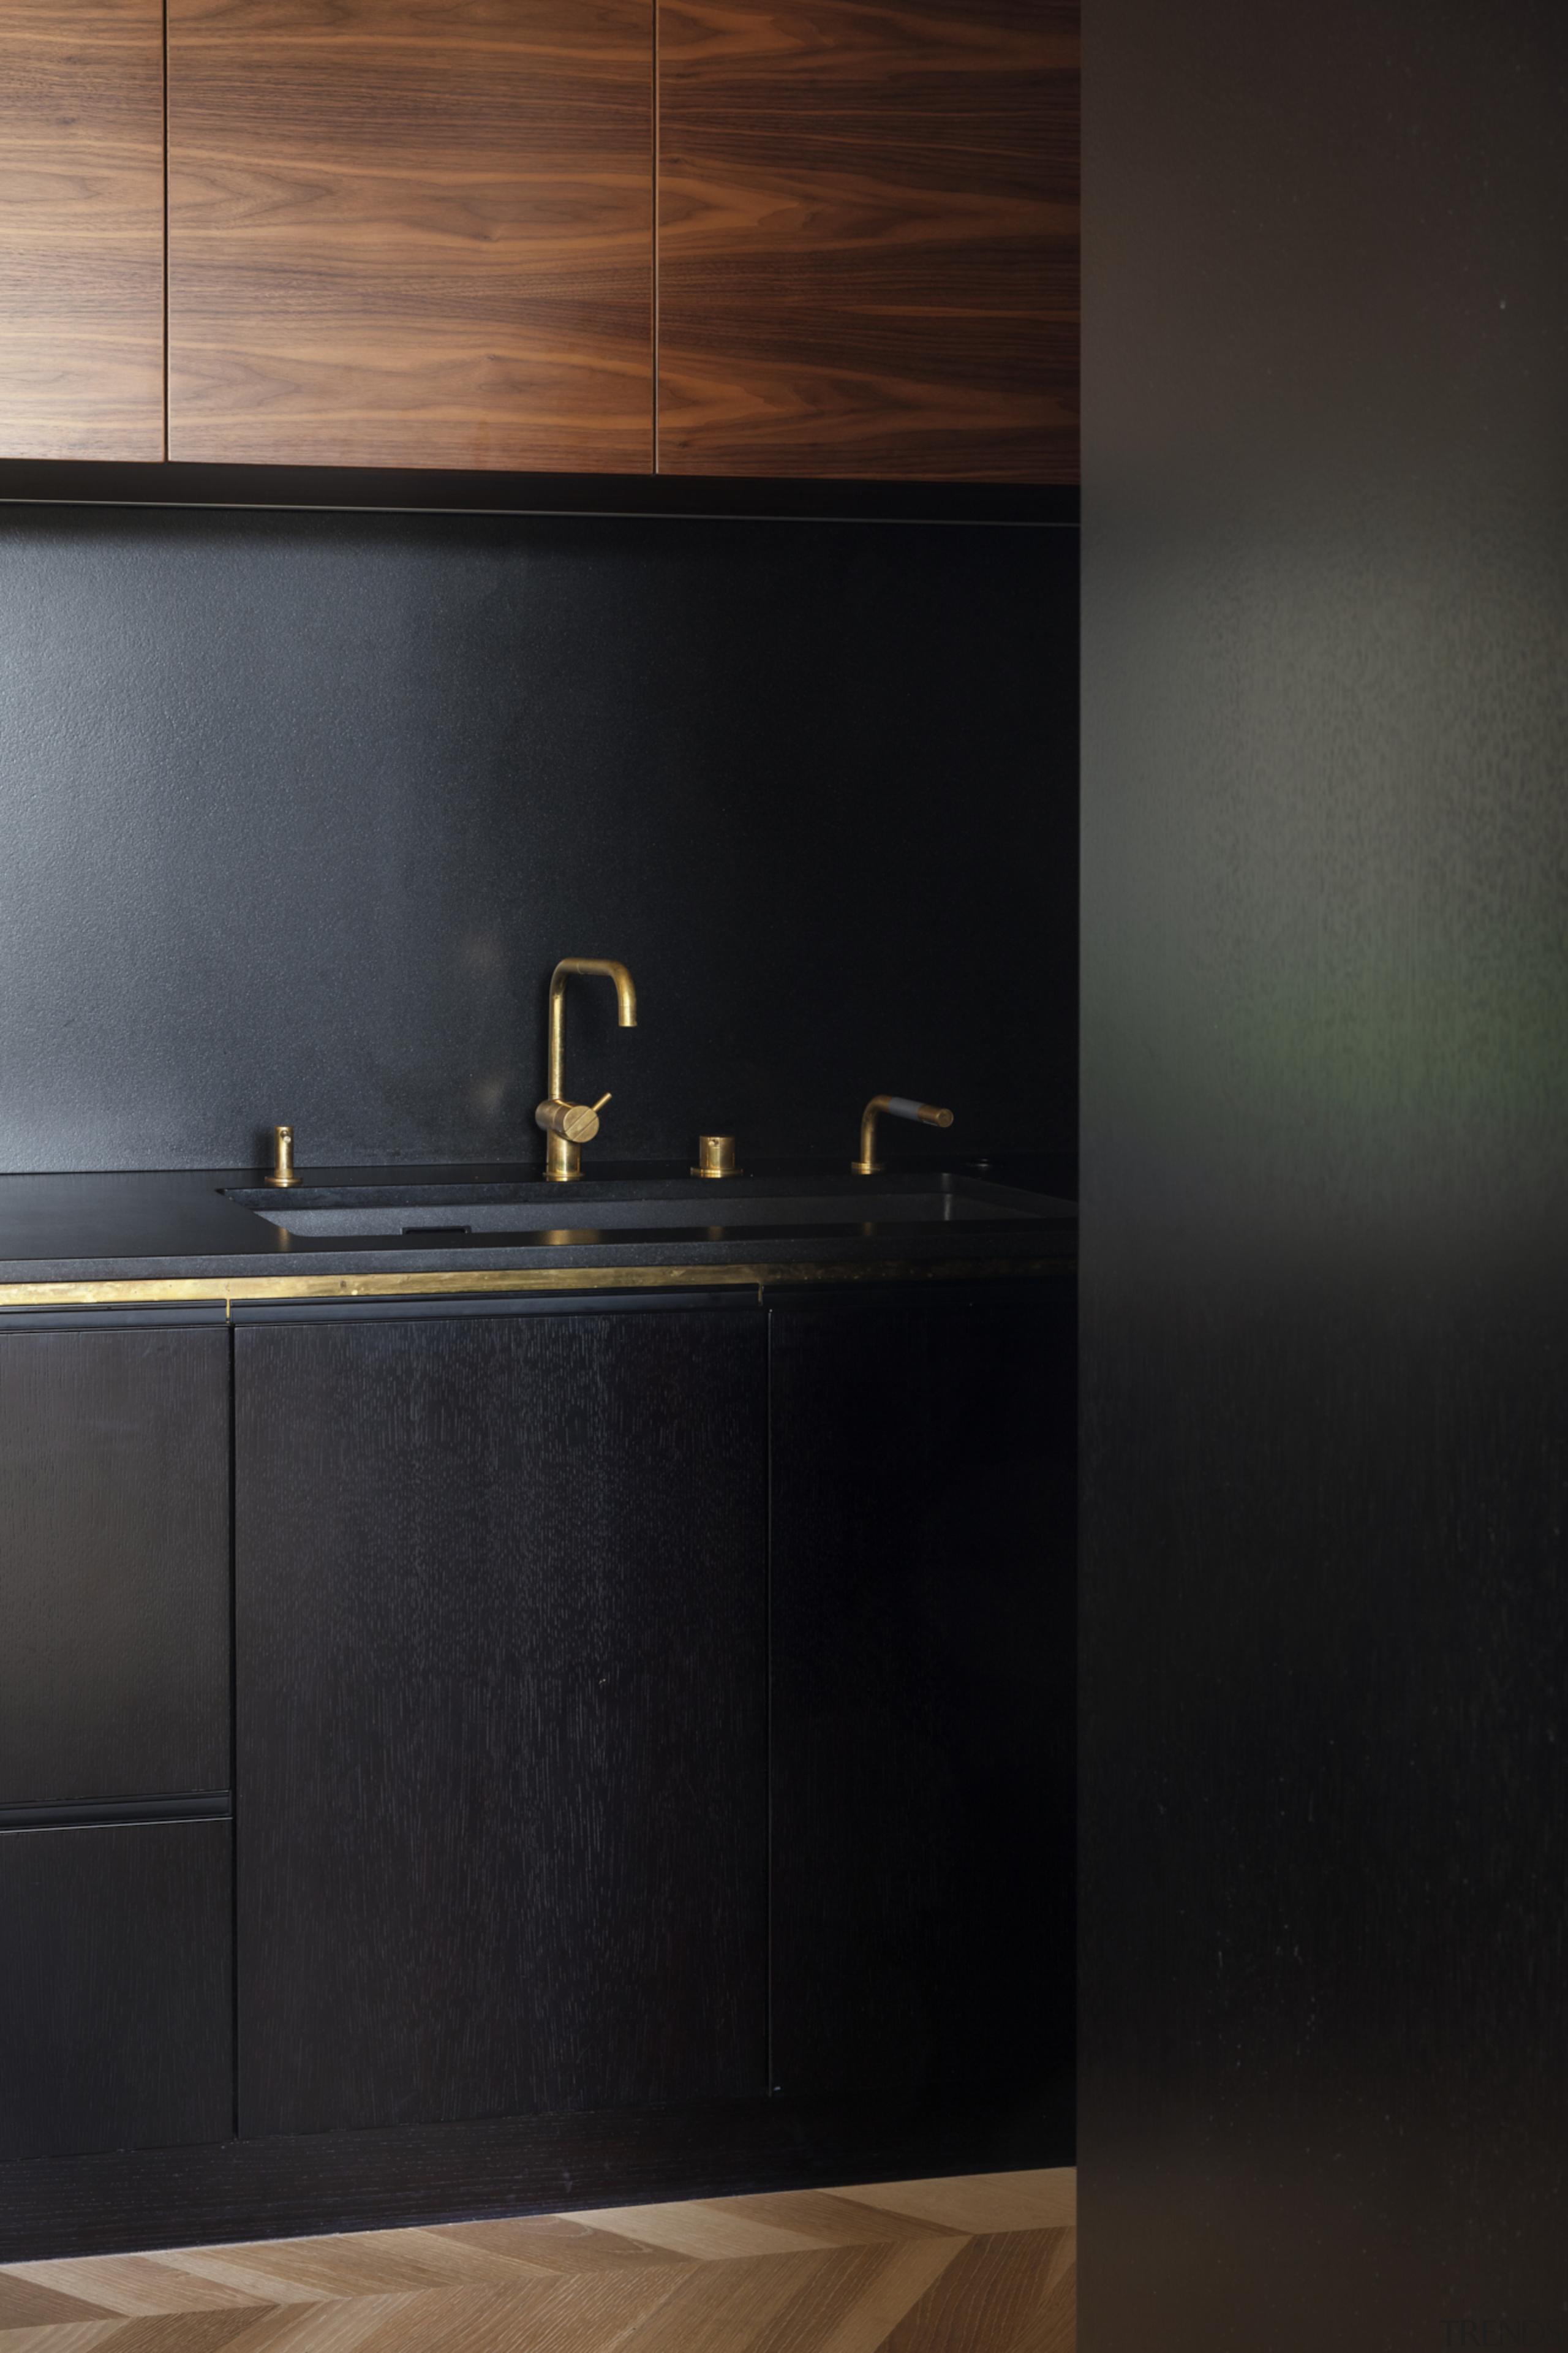 1970's home becomes a modern entertainer's dream - architecture, black, brown, cabinetry, countertop, cupboard, floor, flooring, furniture, hardwood, interior design, kitchen, lighting, line, material property, plywood, room, sink, tap, tile, wall, wood, black